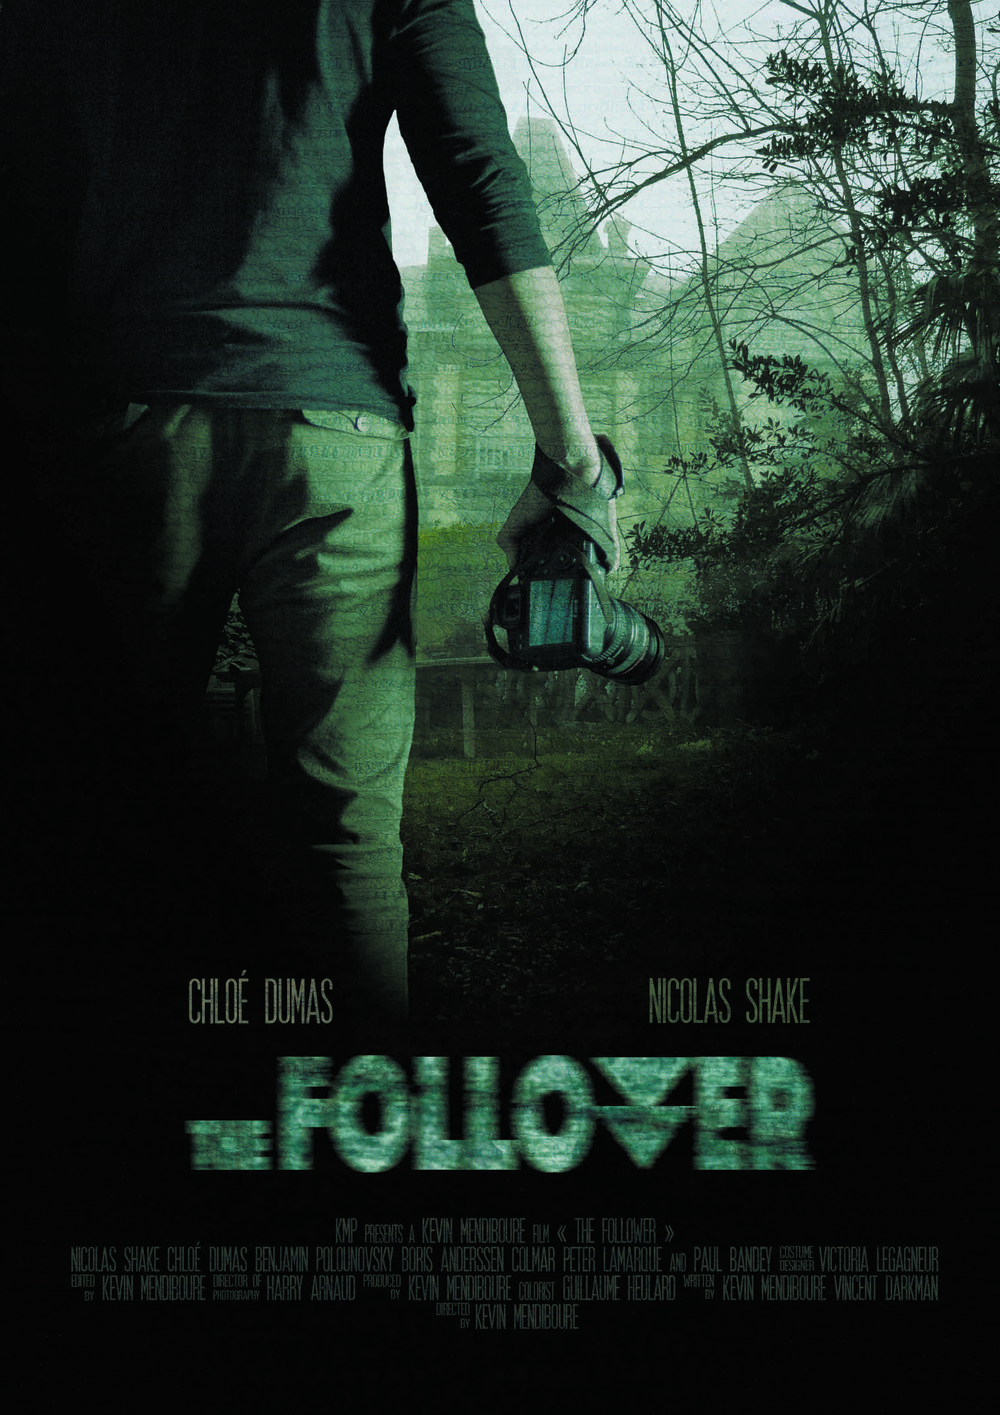 POSTER THE FOLLOWER LIGHT.jpg